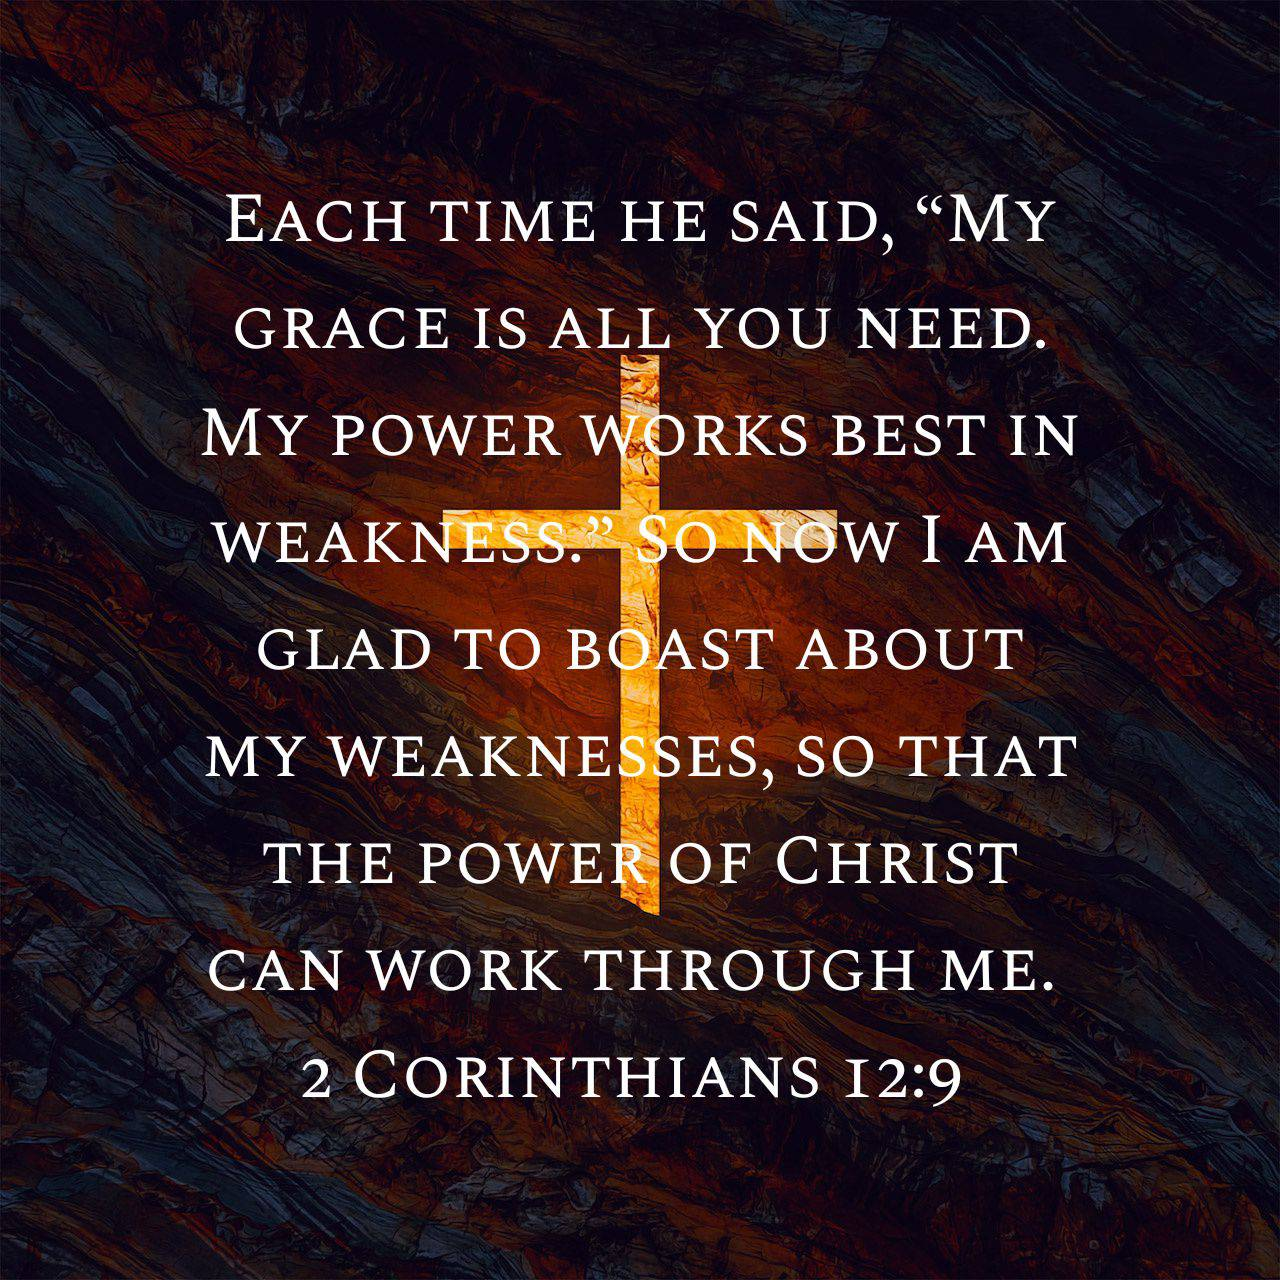 """Glenn W Hunter on Twitter: """"Each time he said, """"My grace is all you need. My power works best in weakness."""" So now I am glad to boast about my weaknesses, so"""